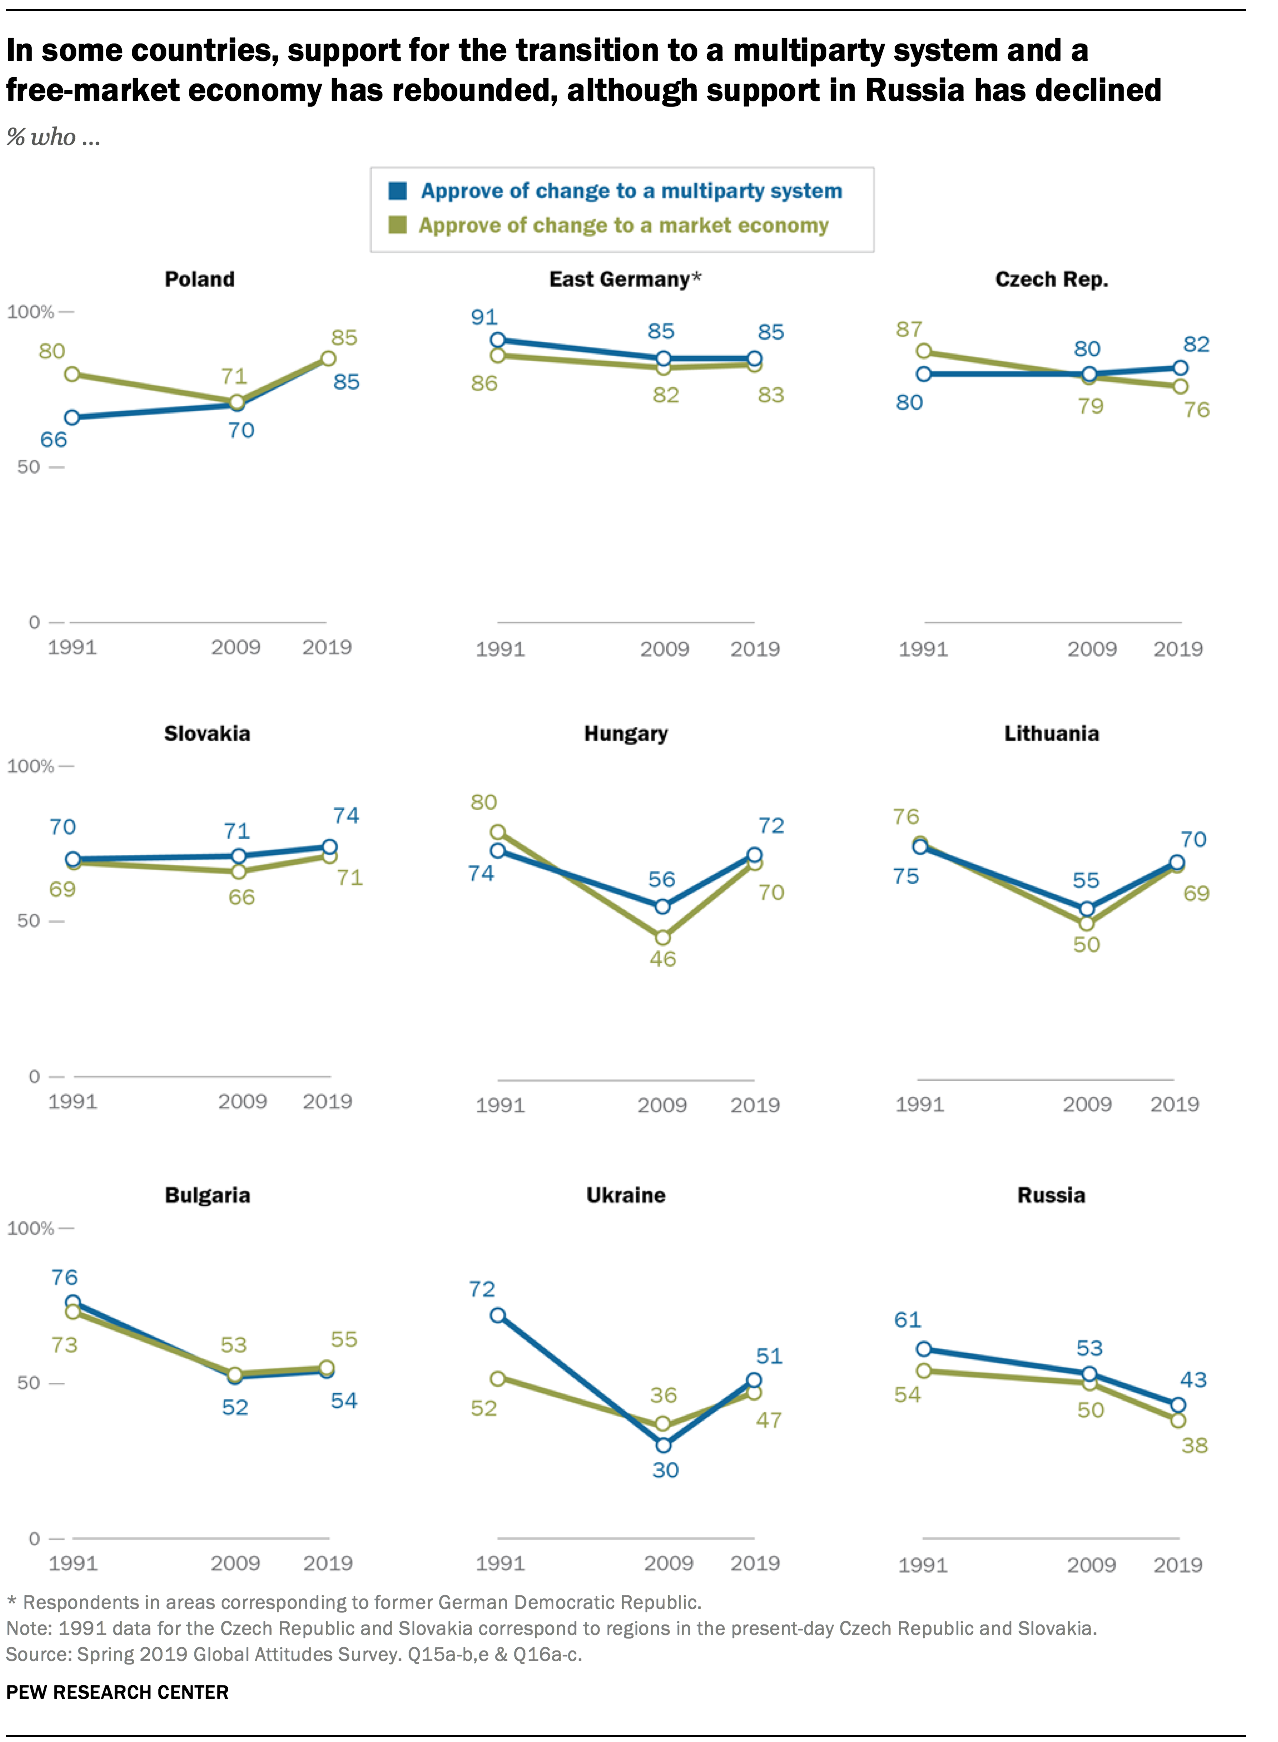 In some countries, support for the transition to a multiparty system and a free-market economy has rebounded, although support in Russia has declined